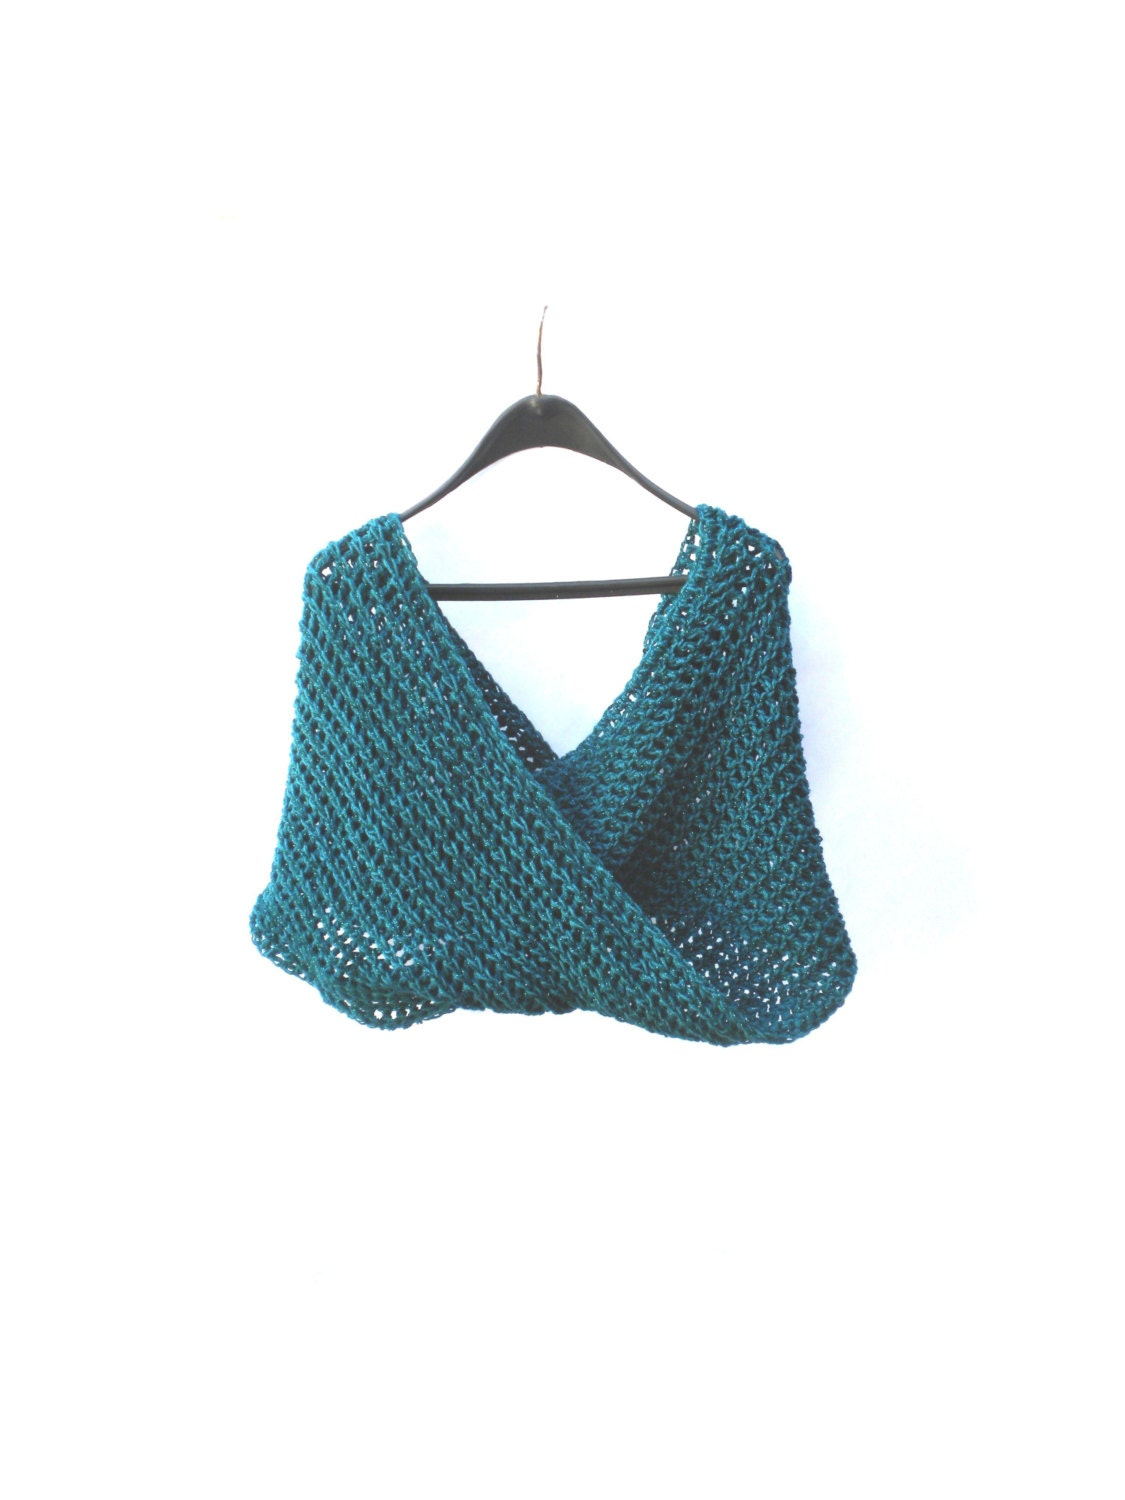 Pippi's TEAL Chunky Infinity Scarf, with SPARKLES, Double Wrap, Crochet, Valentines Gifts, For Her, Winter Fashion, Womens, Warm, Cozy - pippisLongstockings